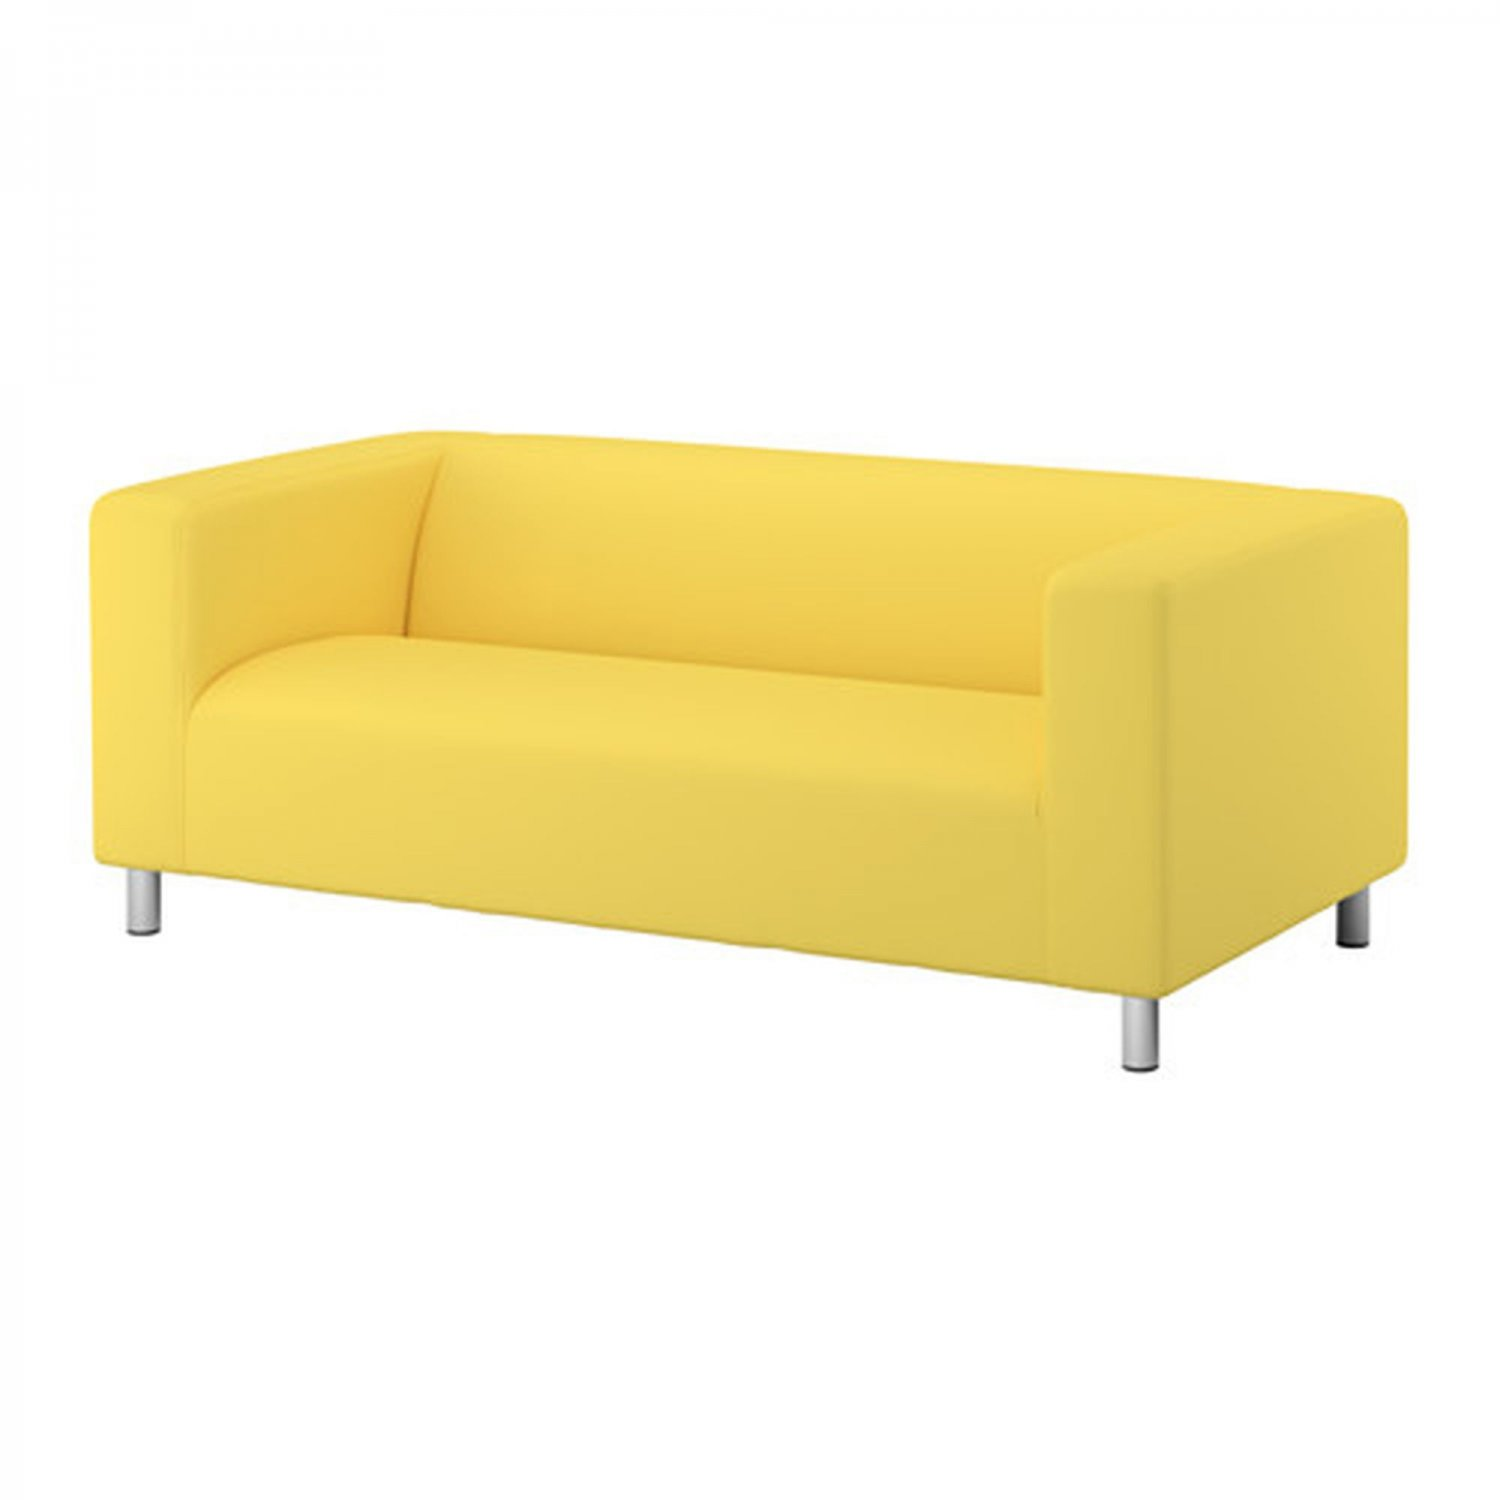 Ikea klippan loveseat sofa slipcover cover vissle yellow Cover for loveseat